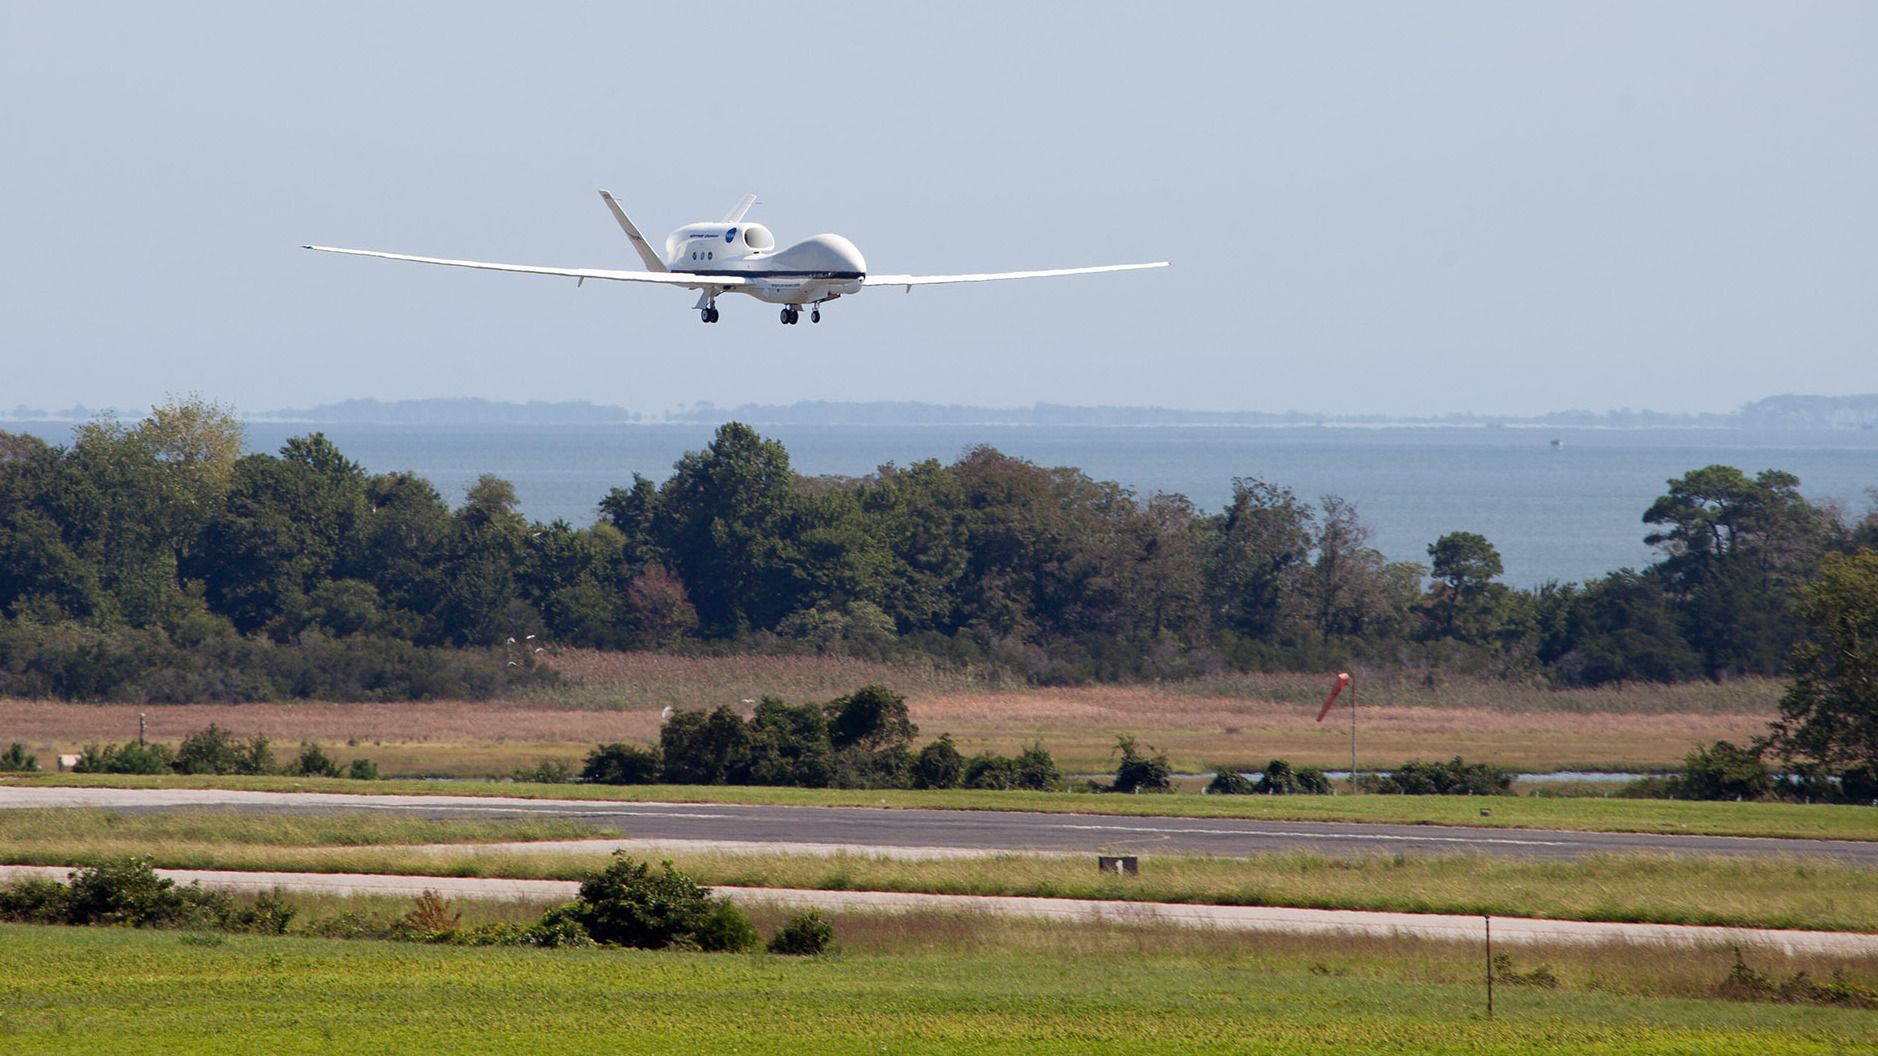 Spy Drones Turning Up New Data About Hurricanes And Weather